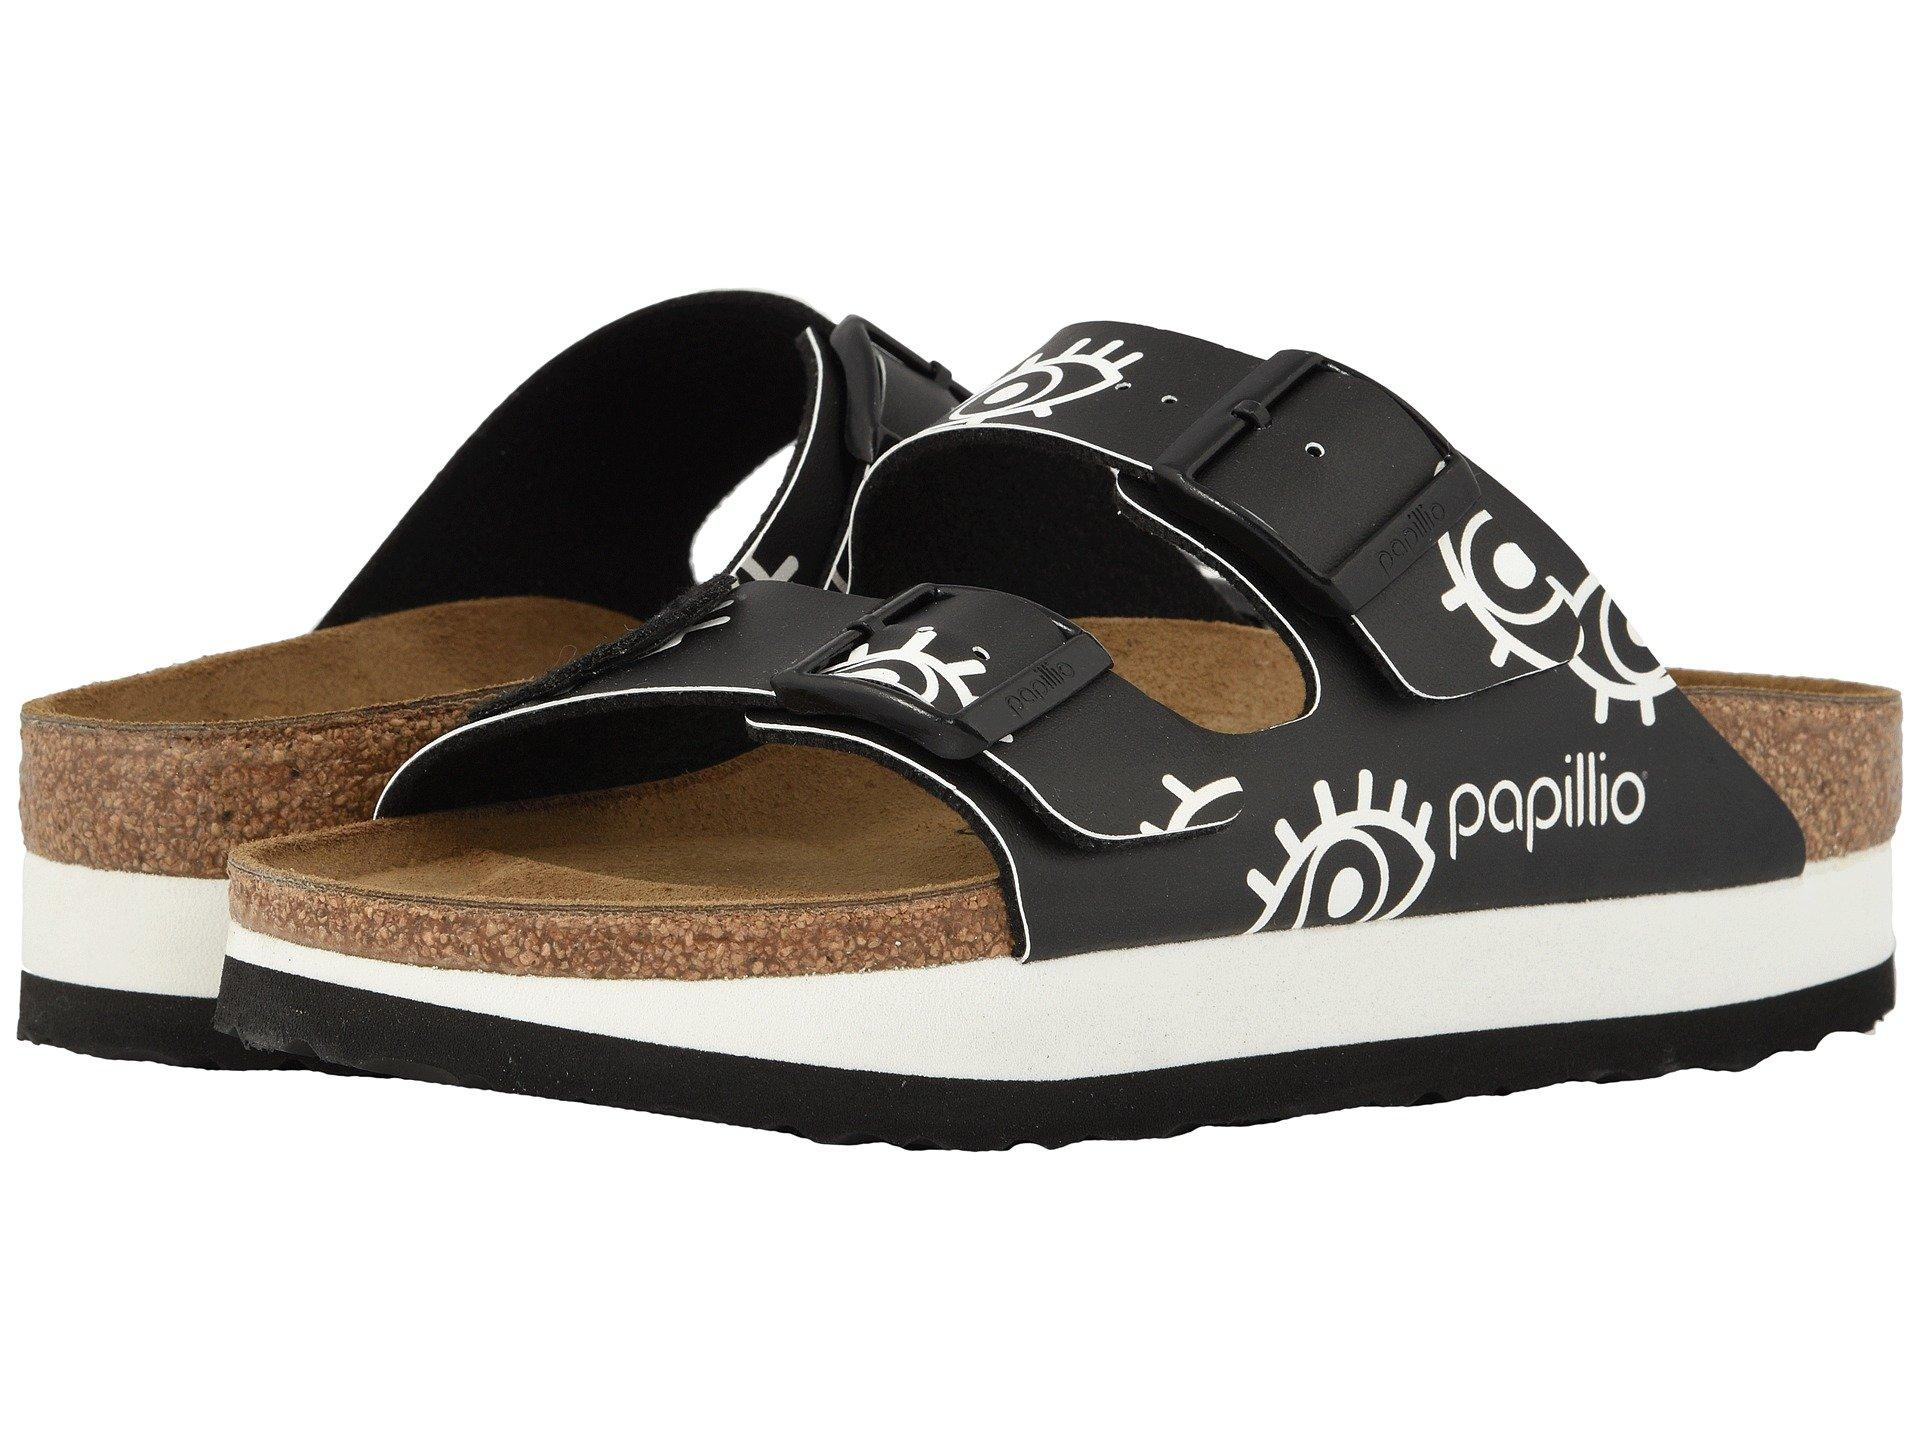 35782fb3ae45 Lyst - Birkenstock Arizona Platform in Black - Save 25%